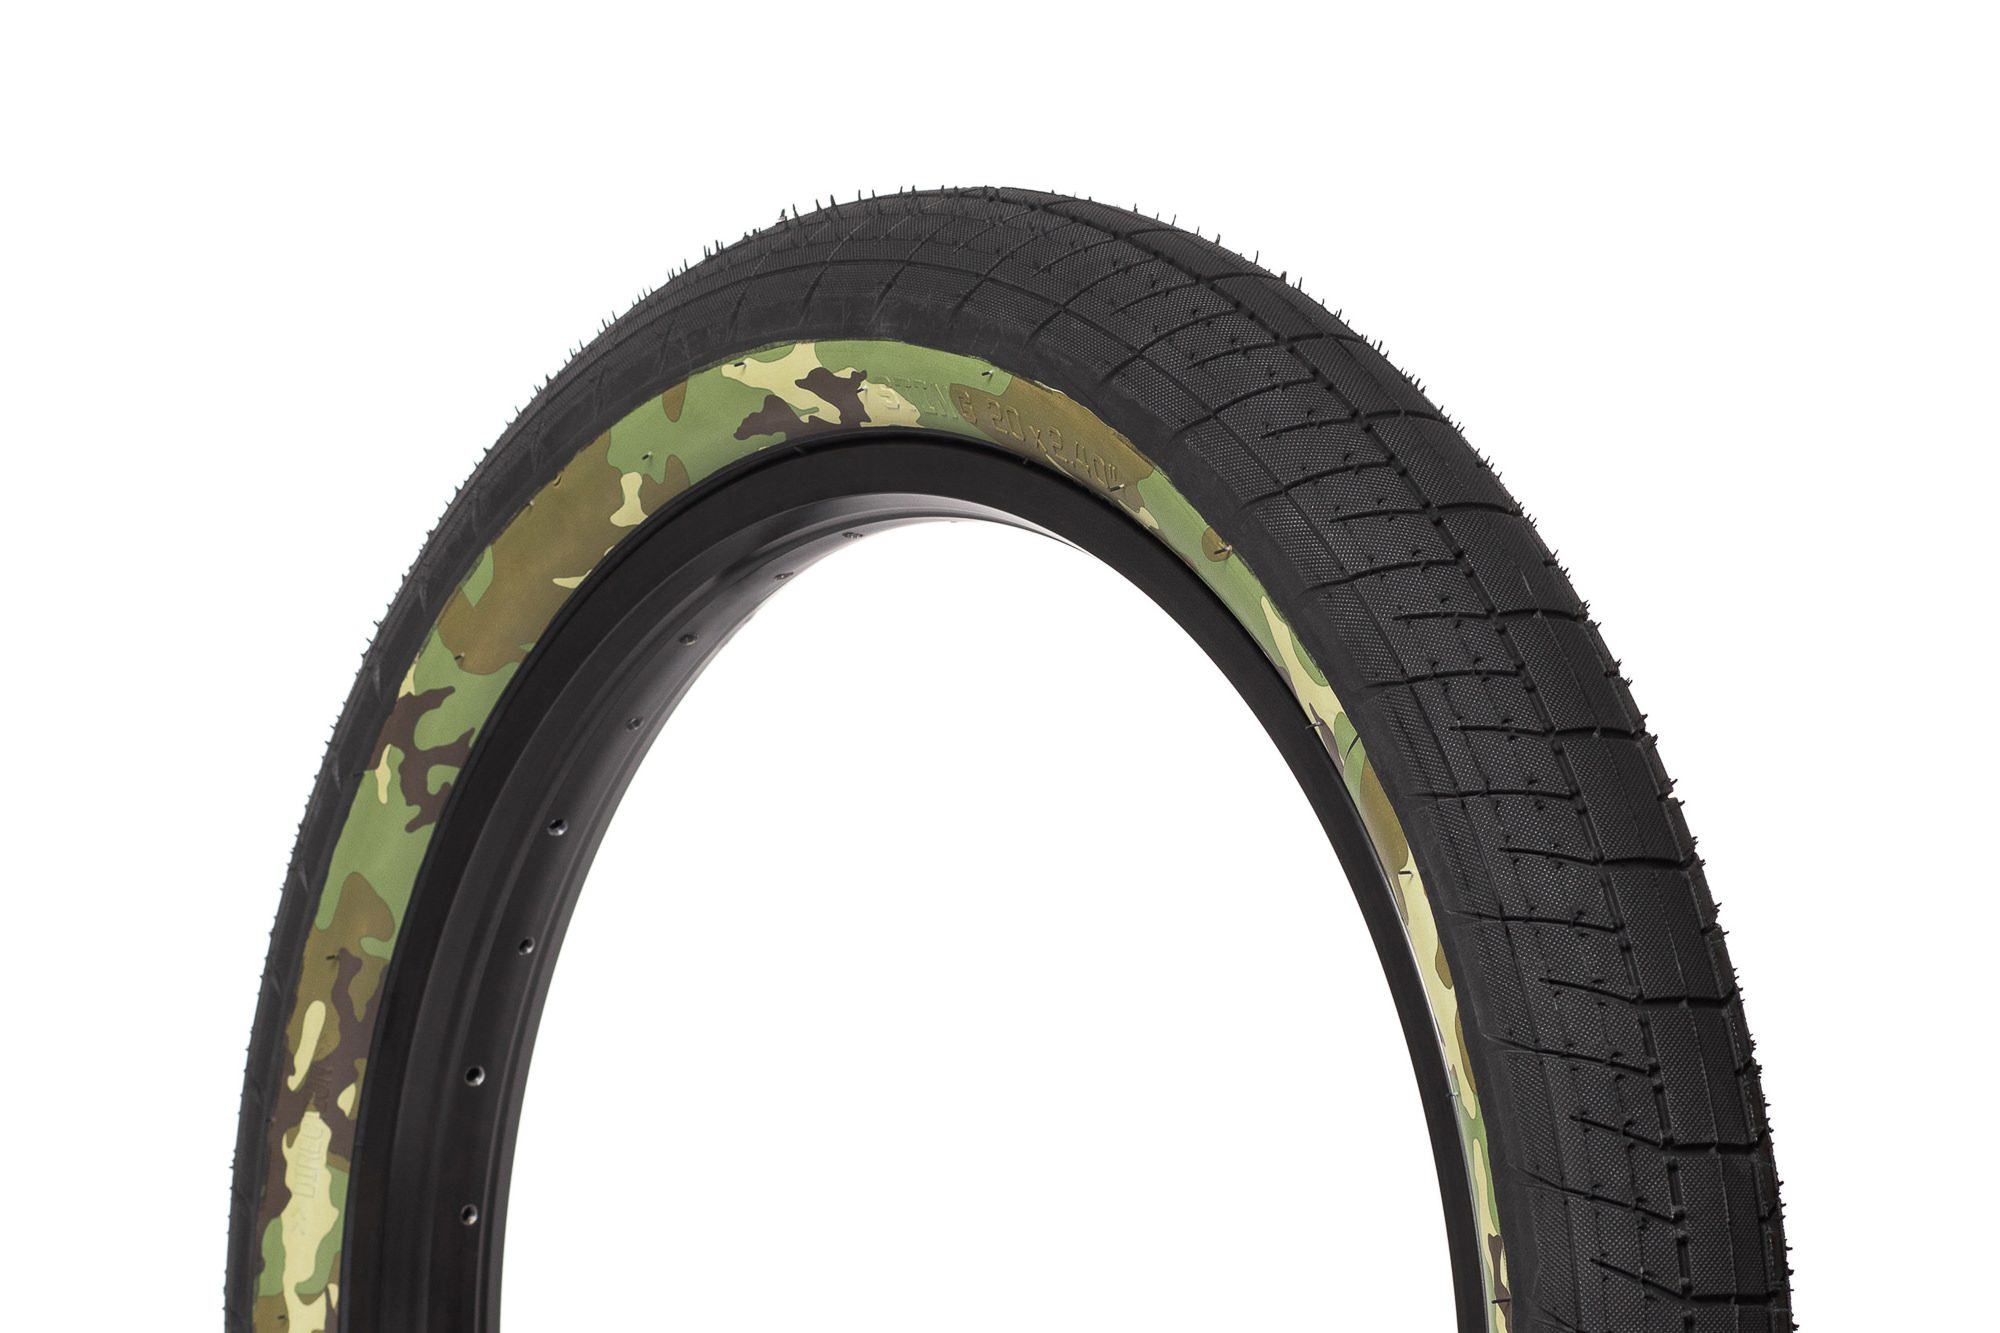 SaltPlus_Sting_tire_black_camo-03